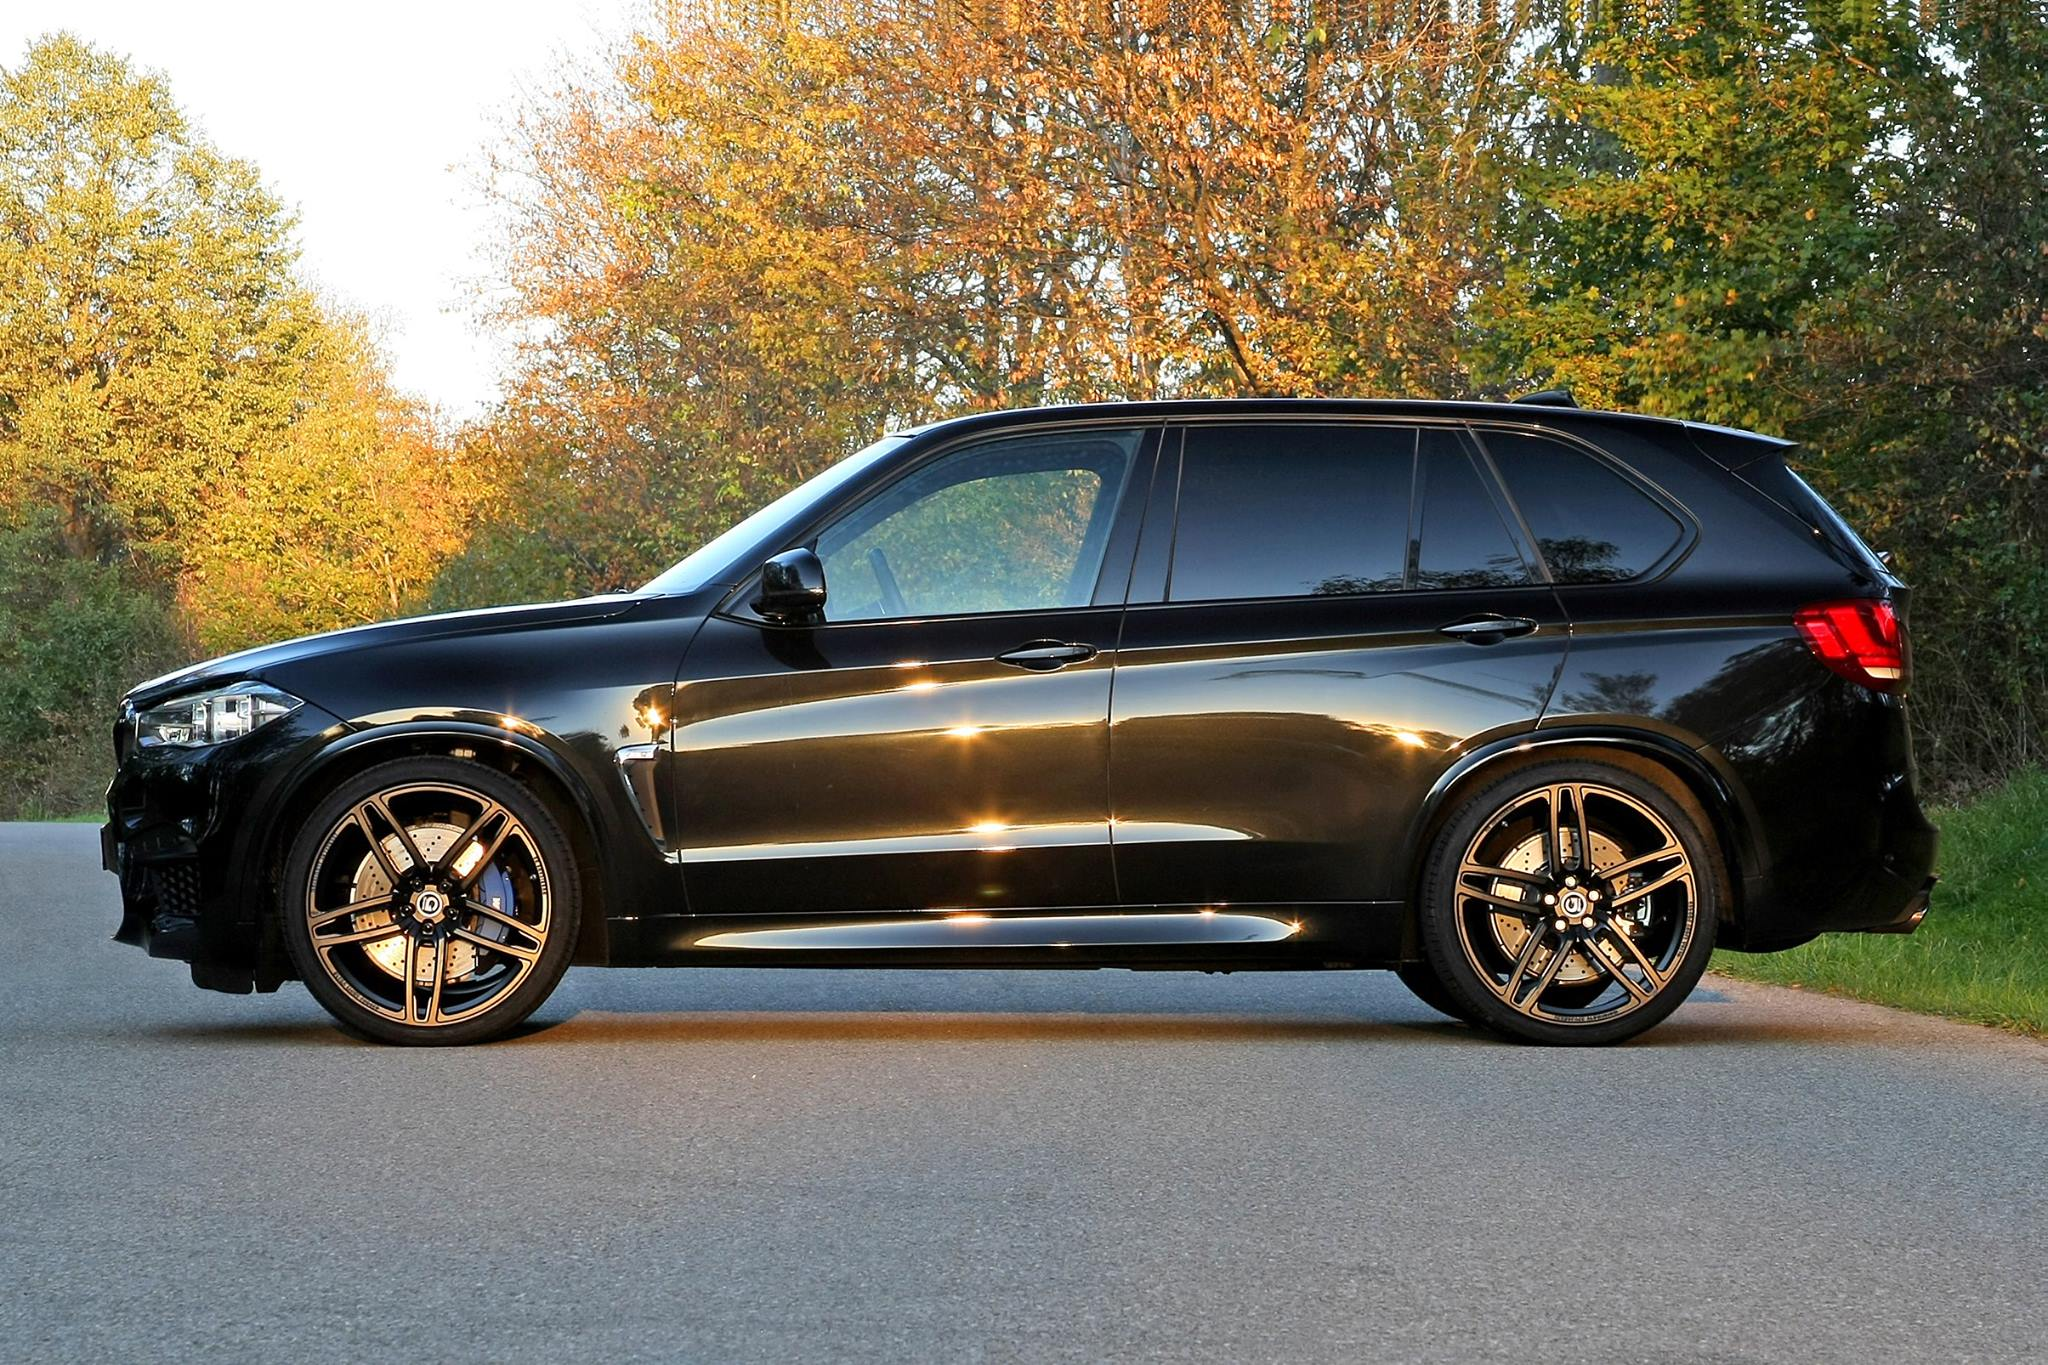 bmw x5 m by g power produces700 hp. Black Bedroom Furniture Sets. Home Design Ideas